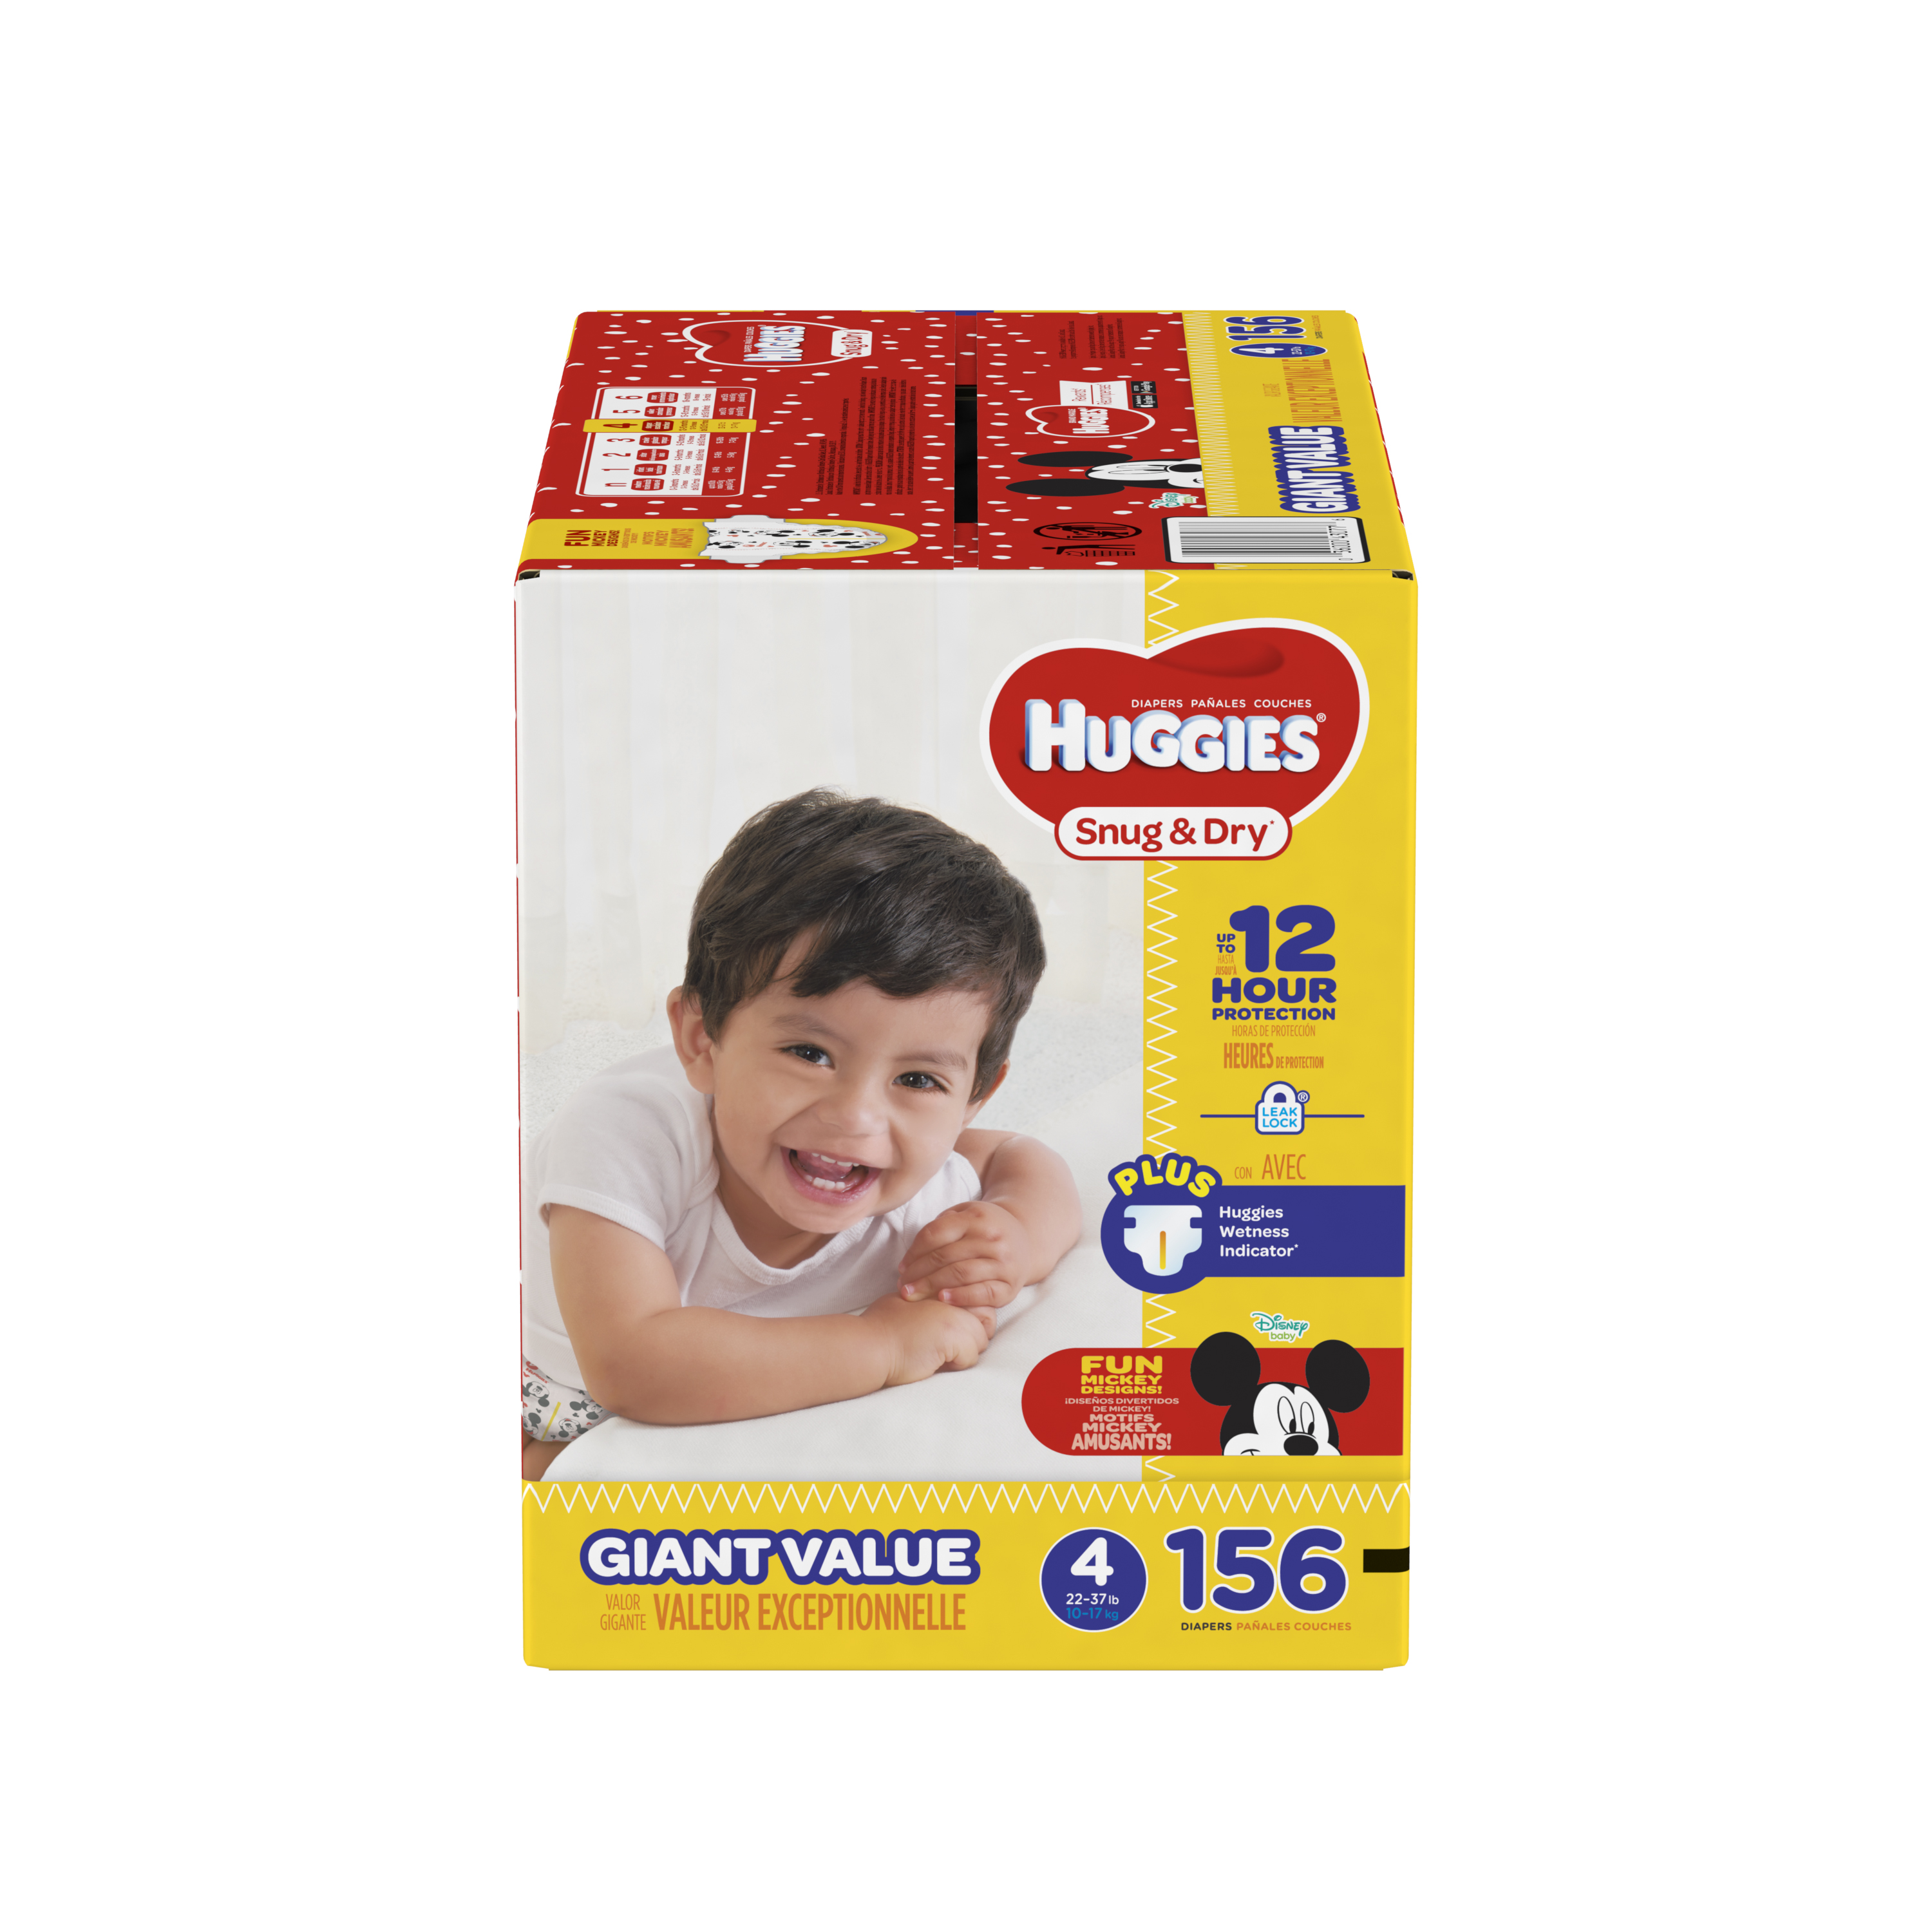 Huggies Snug & Dry Diapers Giant Pack - Size 4 (156ct)